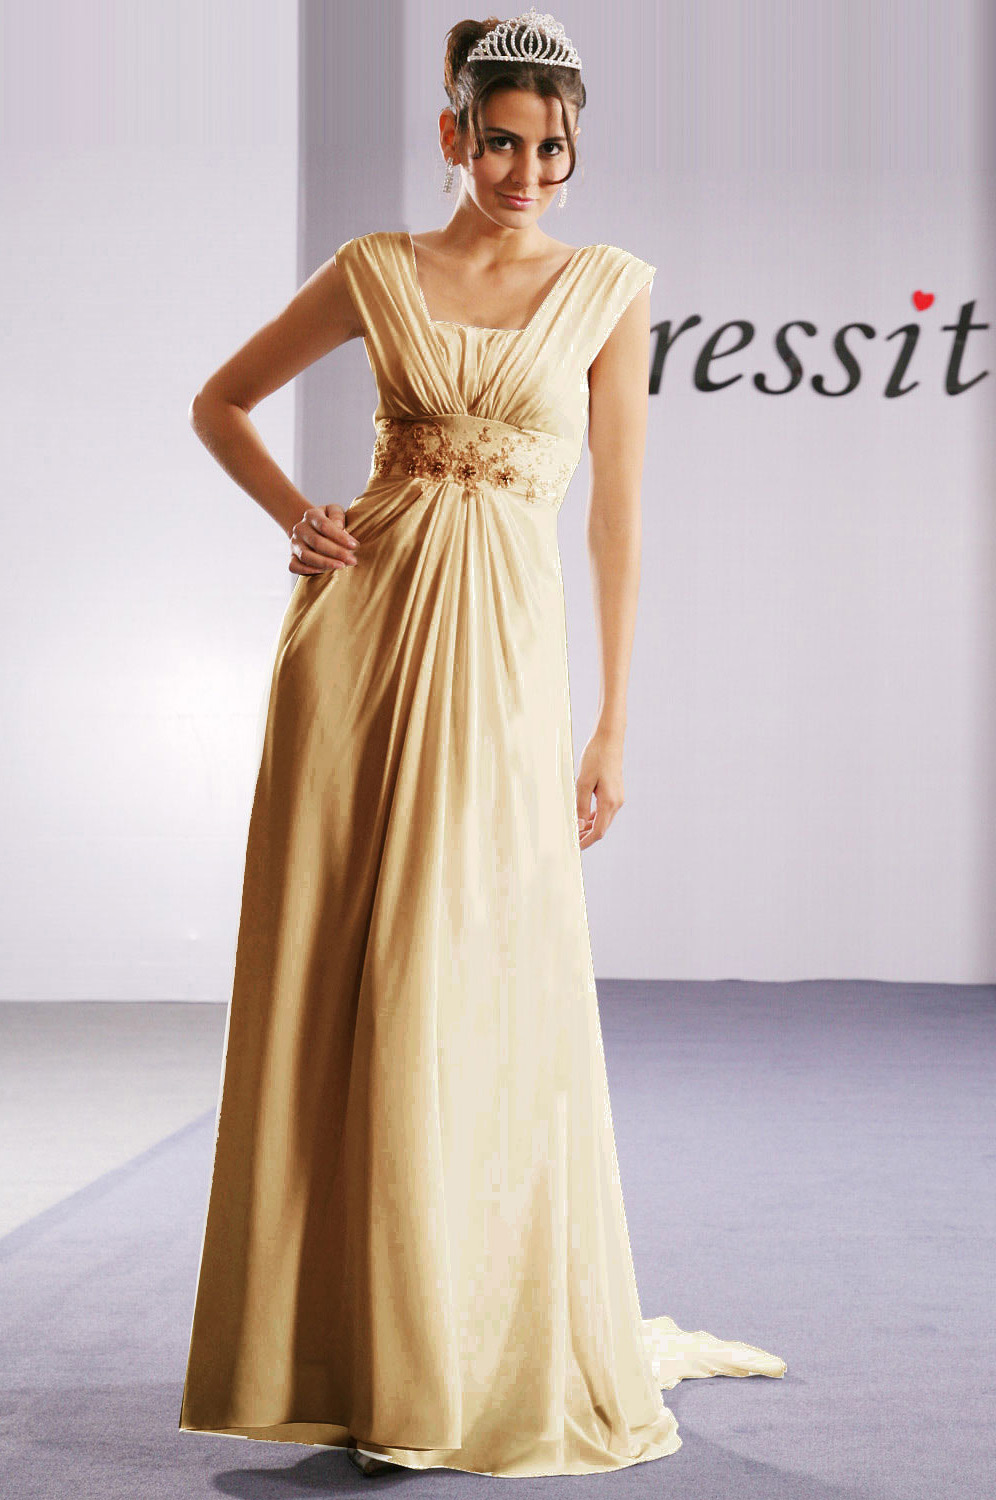 On sale !! eDressit Gown Evening Dress (00092007f)